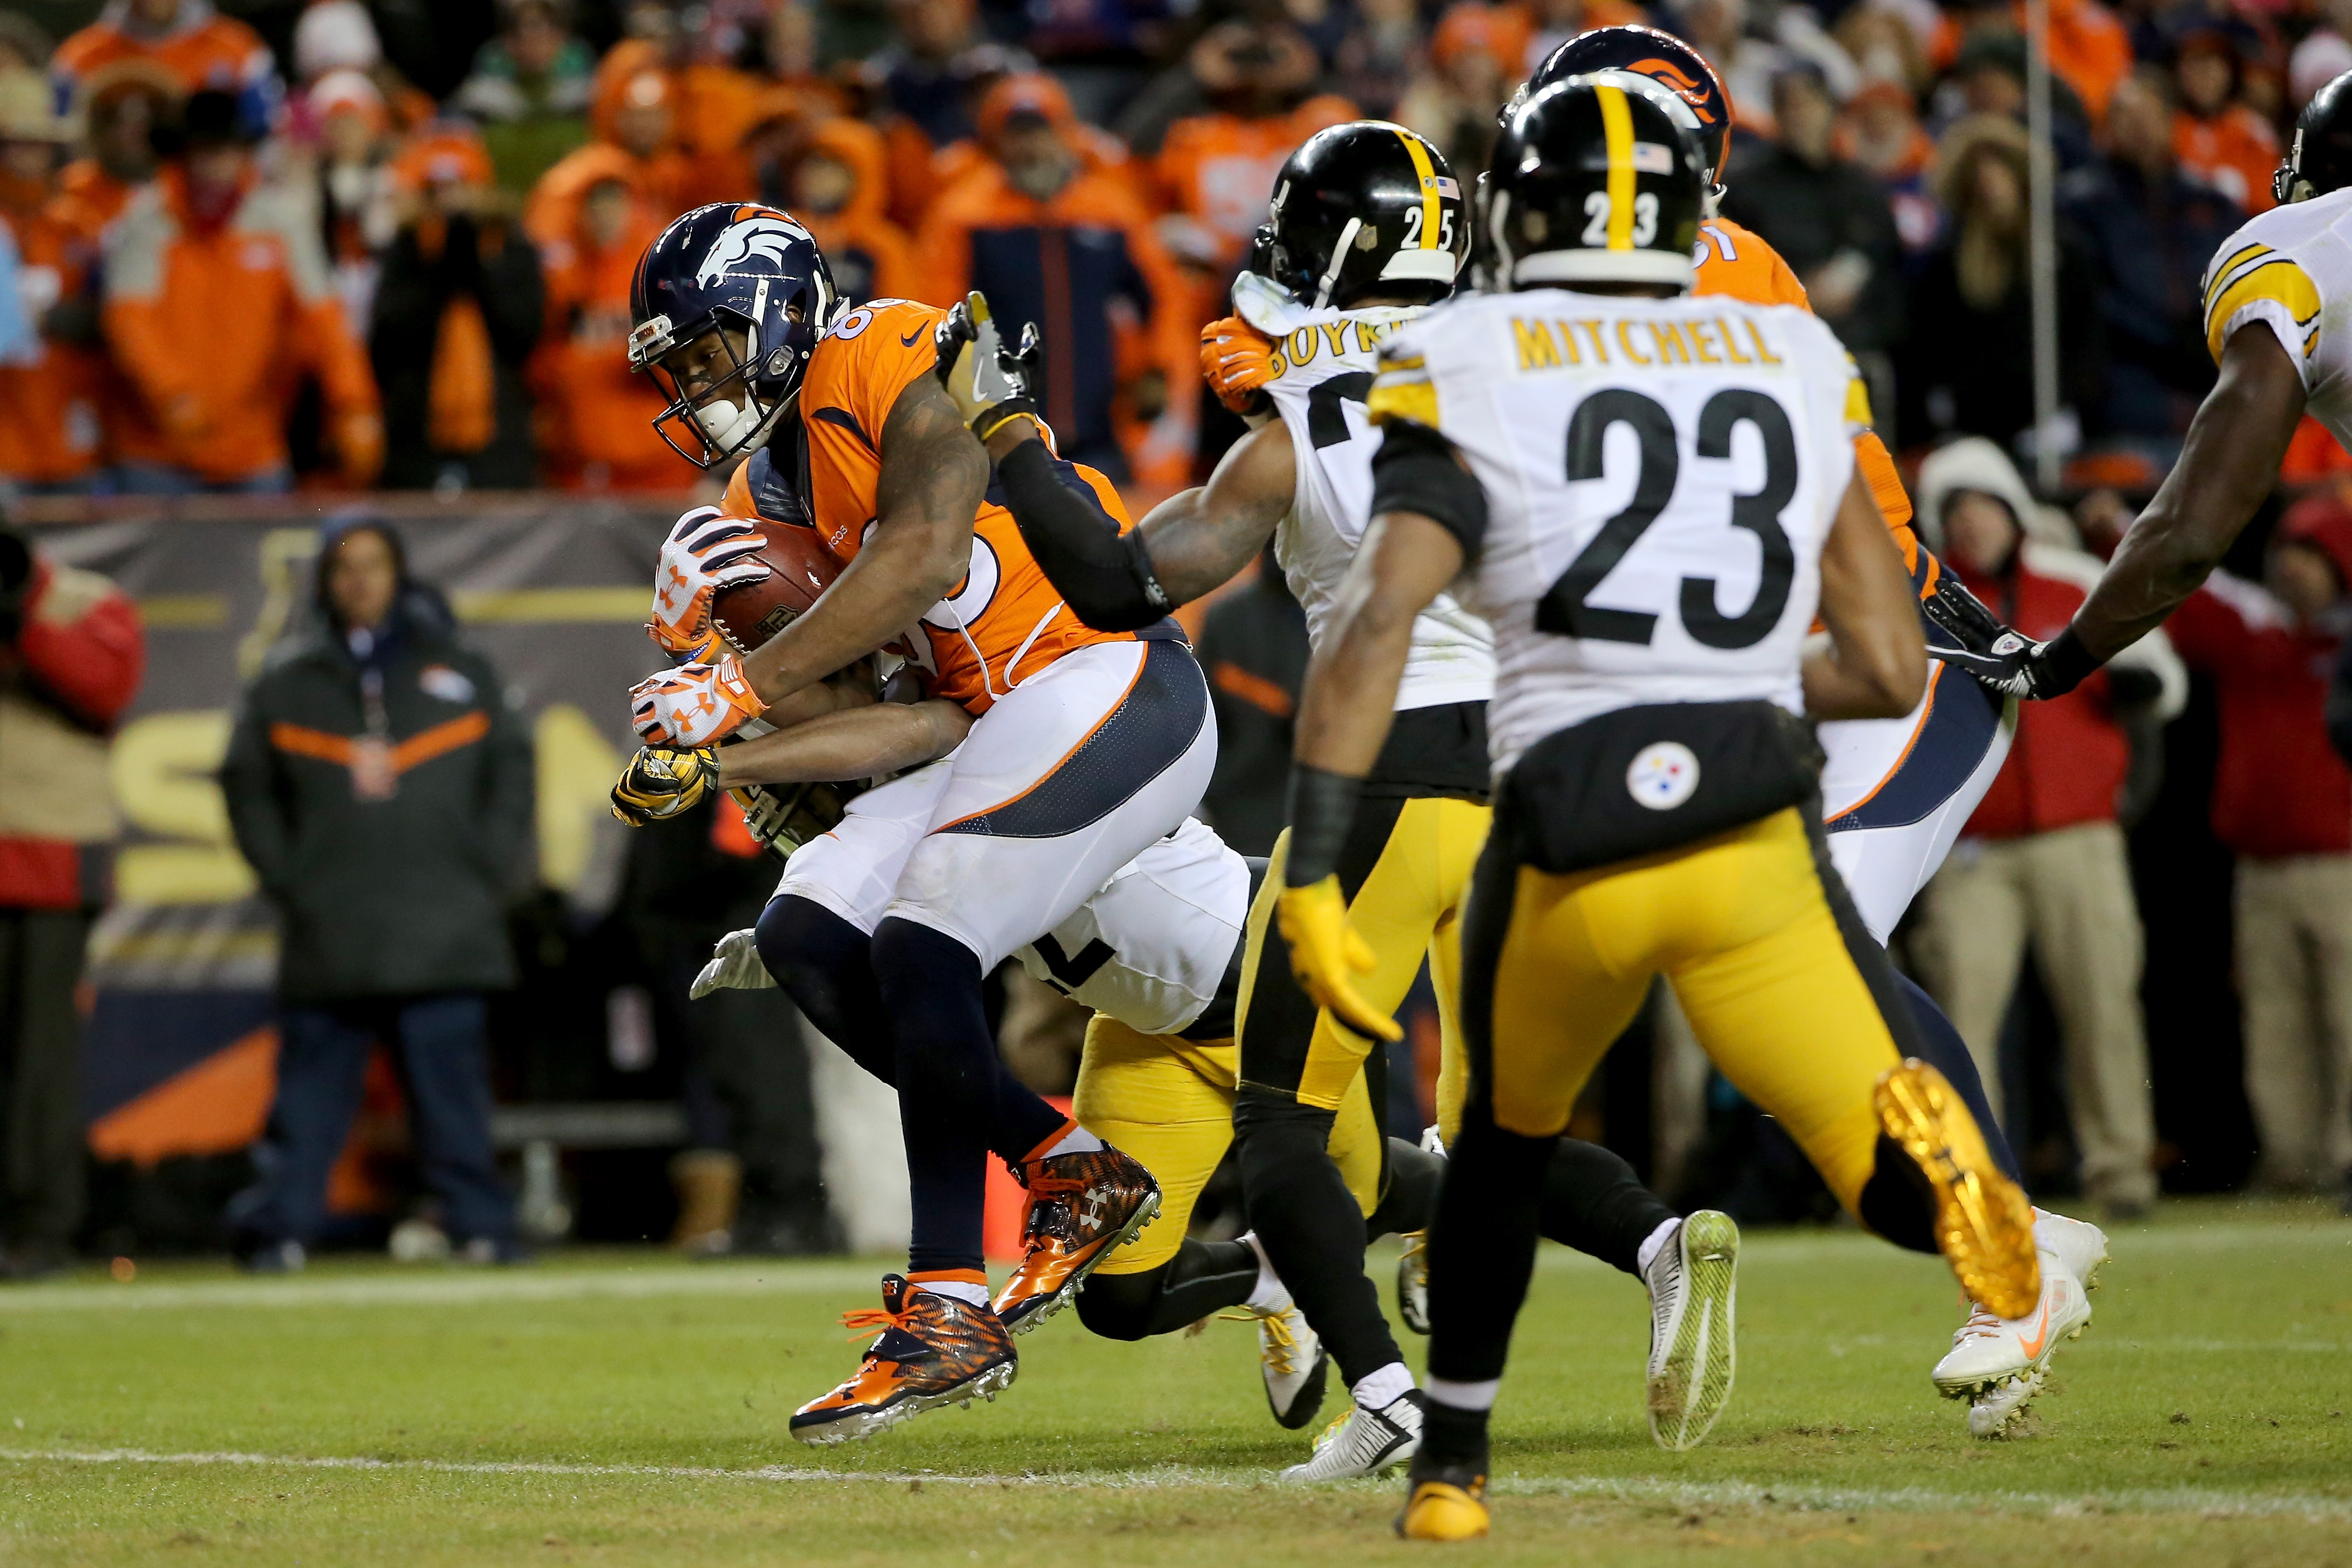 Demaryius Thomas #88 of the Denver Broncos scores the two point conversion in the fourth quarter against the Pittsburgh Steelers during the AFC Divisional Playoff Game at Sports Authority Field at Mile High on January 17, 2016.  (Photo by Doug Pensinger/Getty Images)